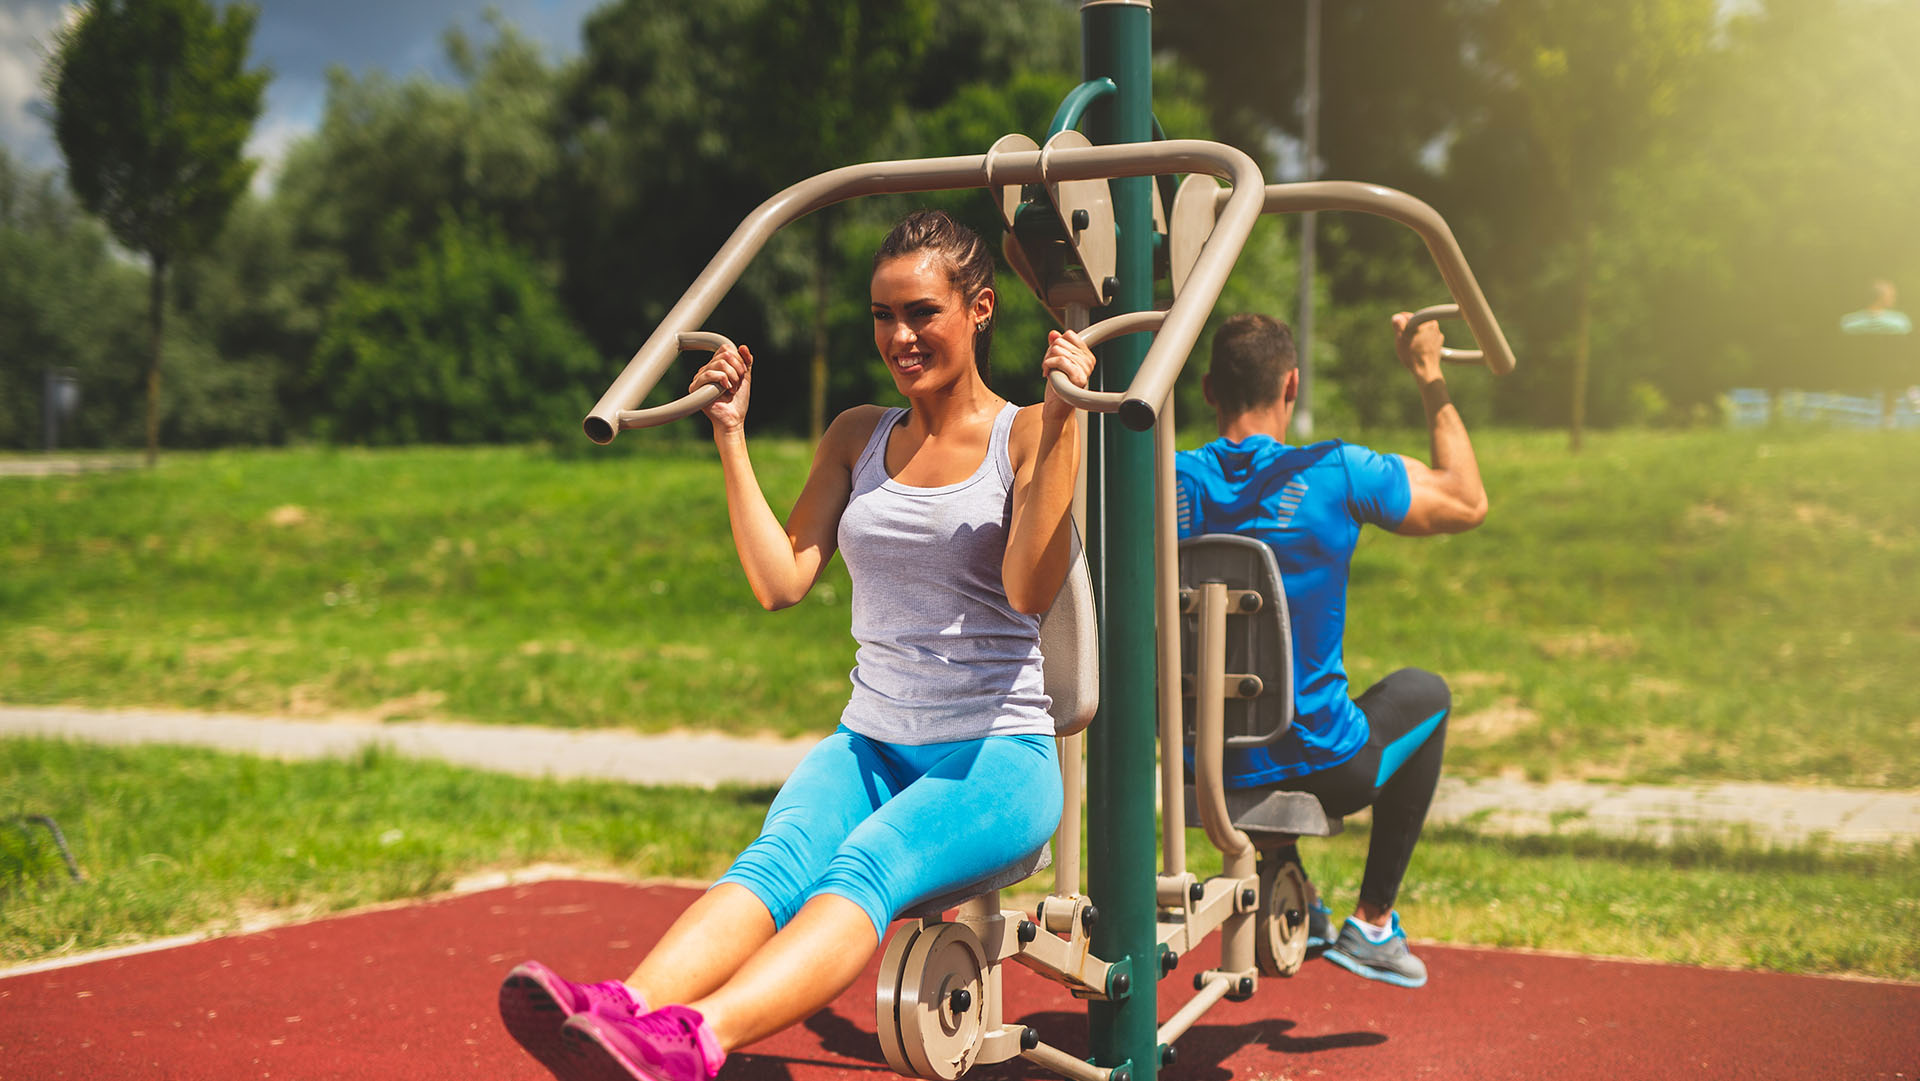 Young couple doing strength exercises on a exercise machine at the outdoor gym.